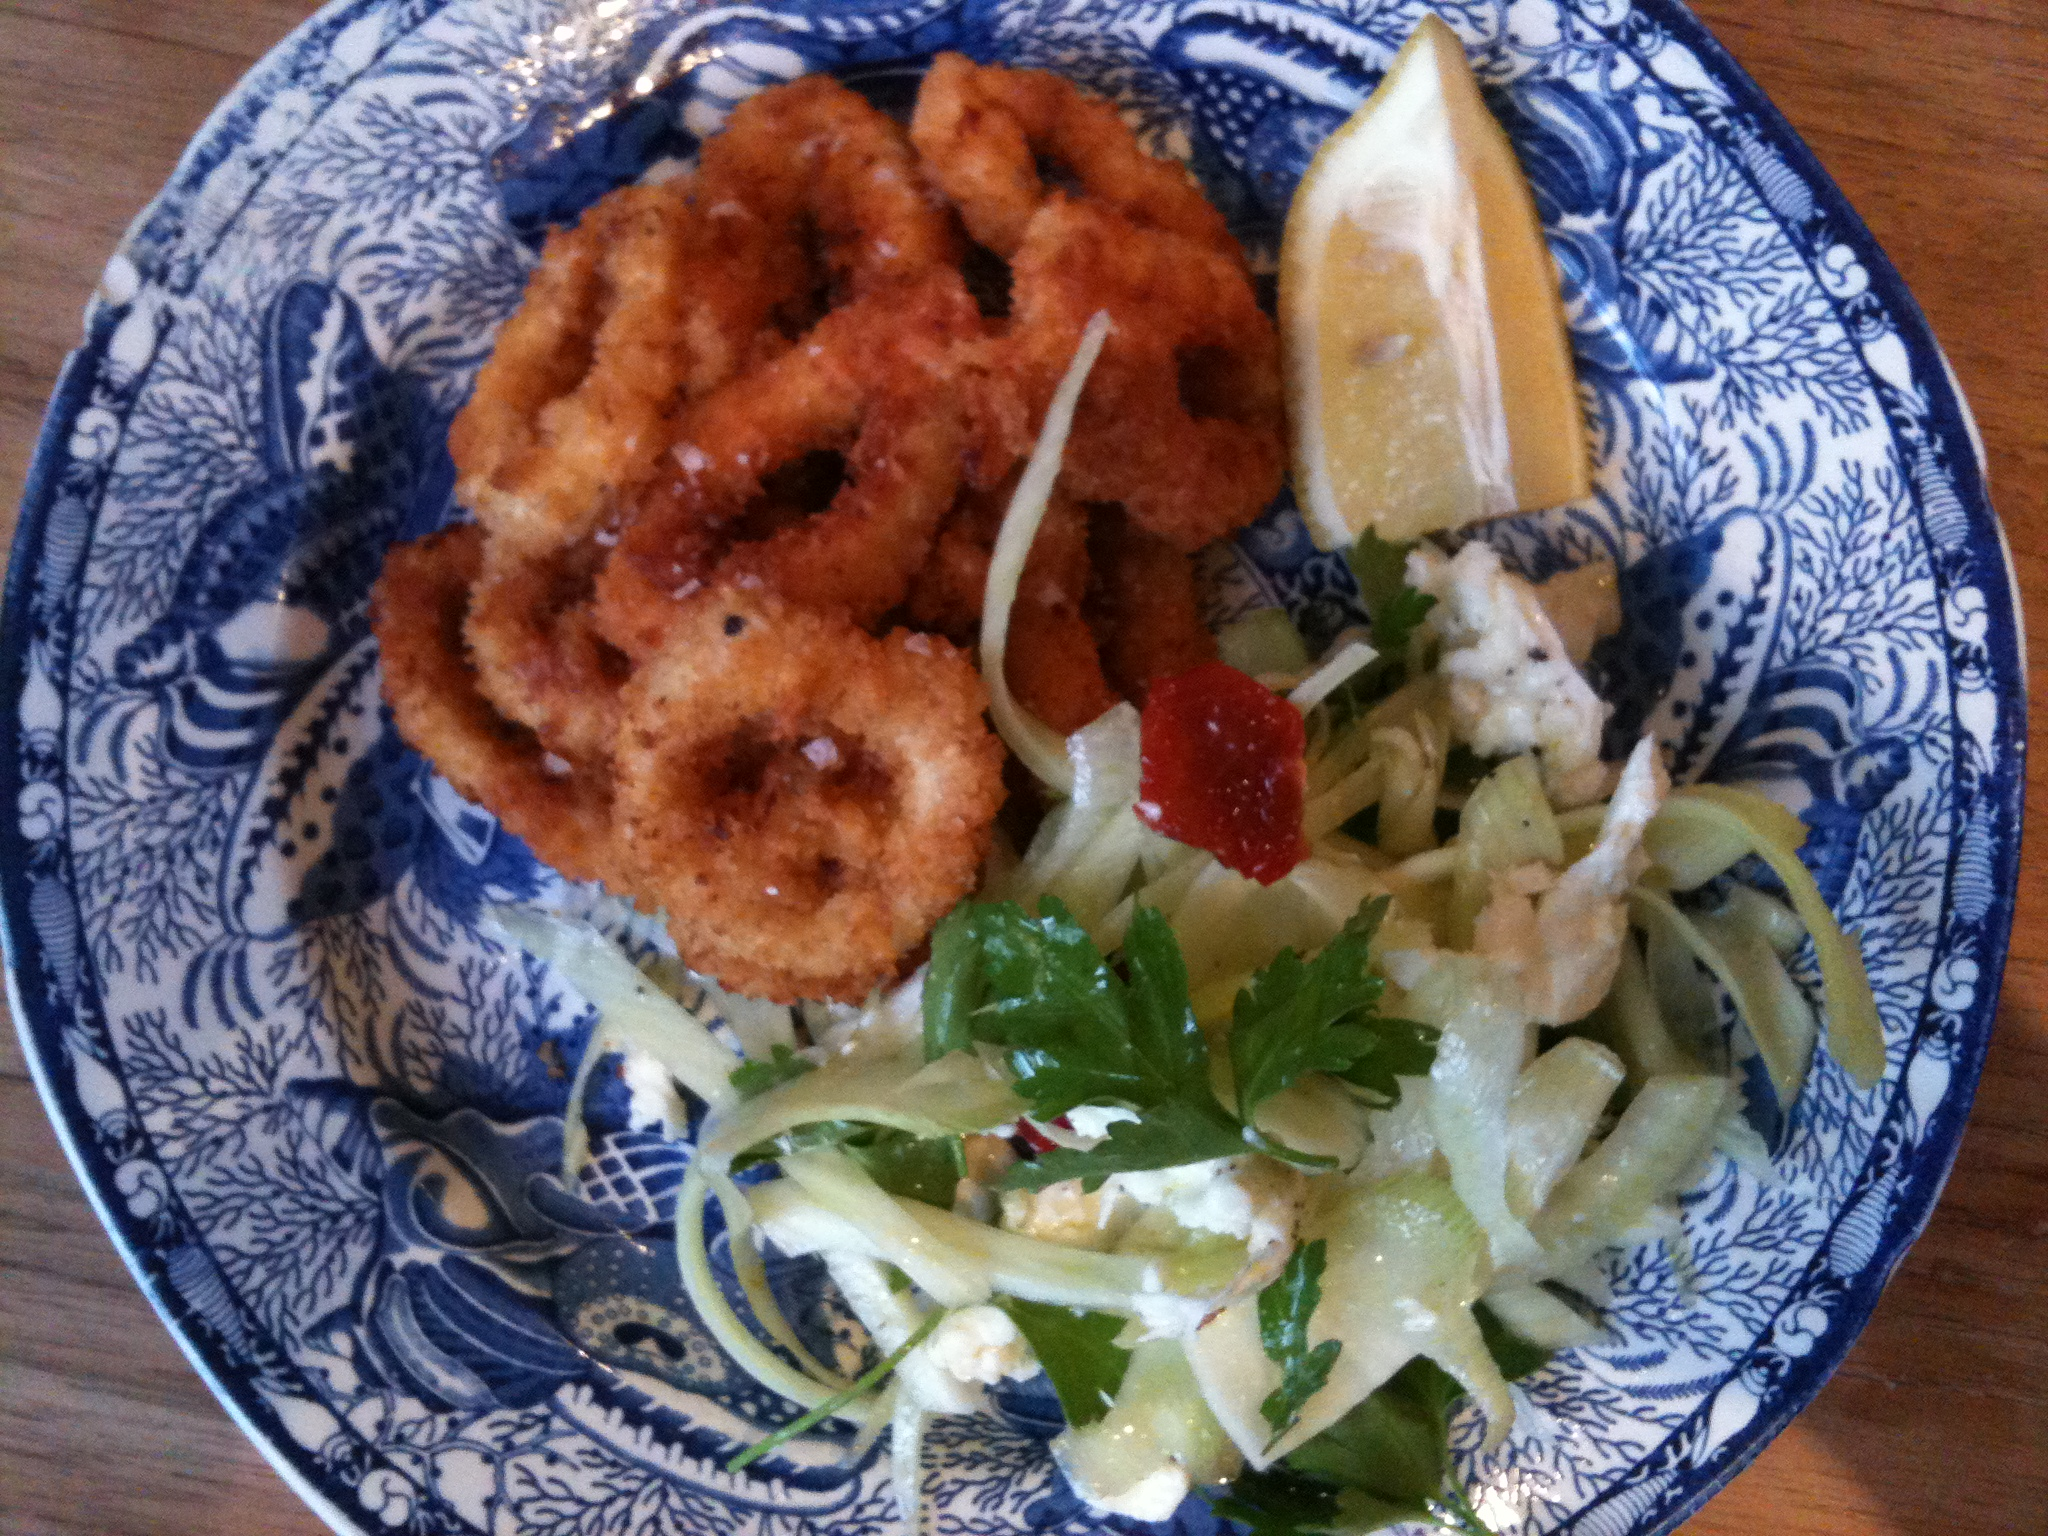 Recipe calamari and a crisp salad james ramsden ah the good old rig random ingredient generator id spent yesterday afternoon staring listlessly at my laptop barely a word of sense escaping my forumfinder Image collections